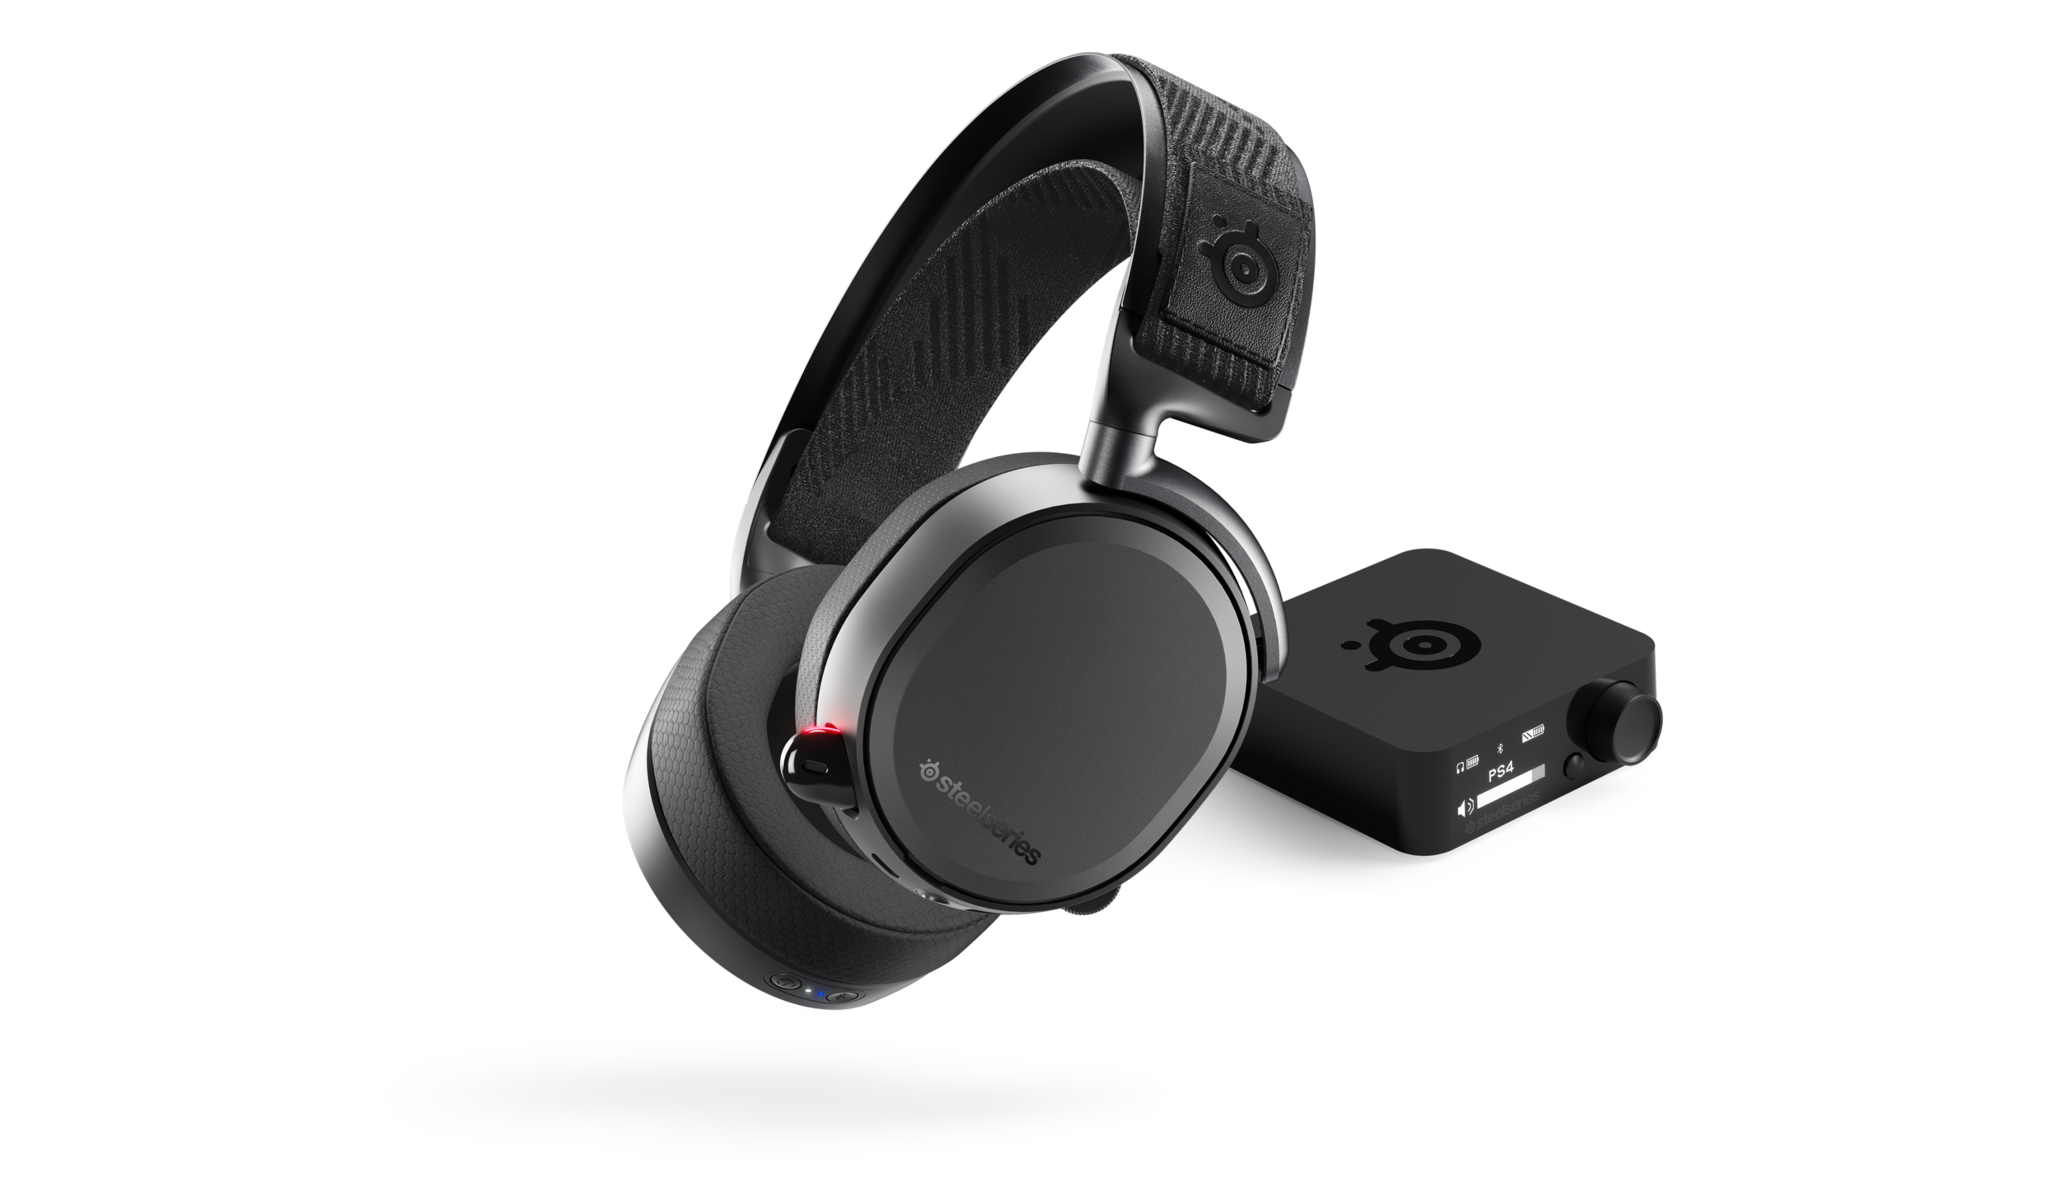 Steelseries - Arctis Pro Wireless Gaming Headset